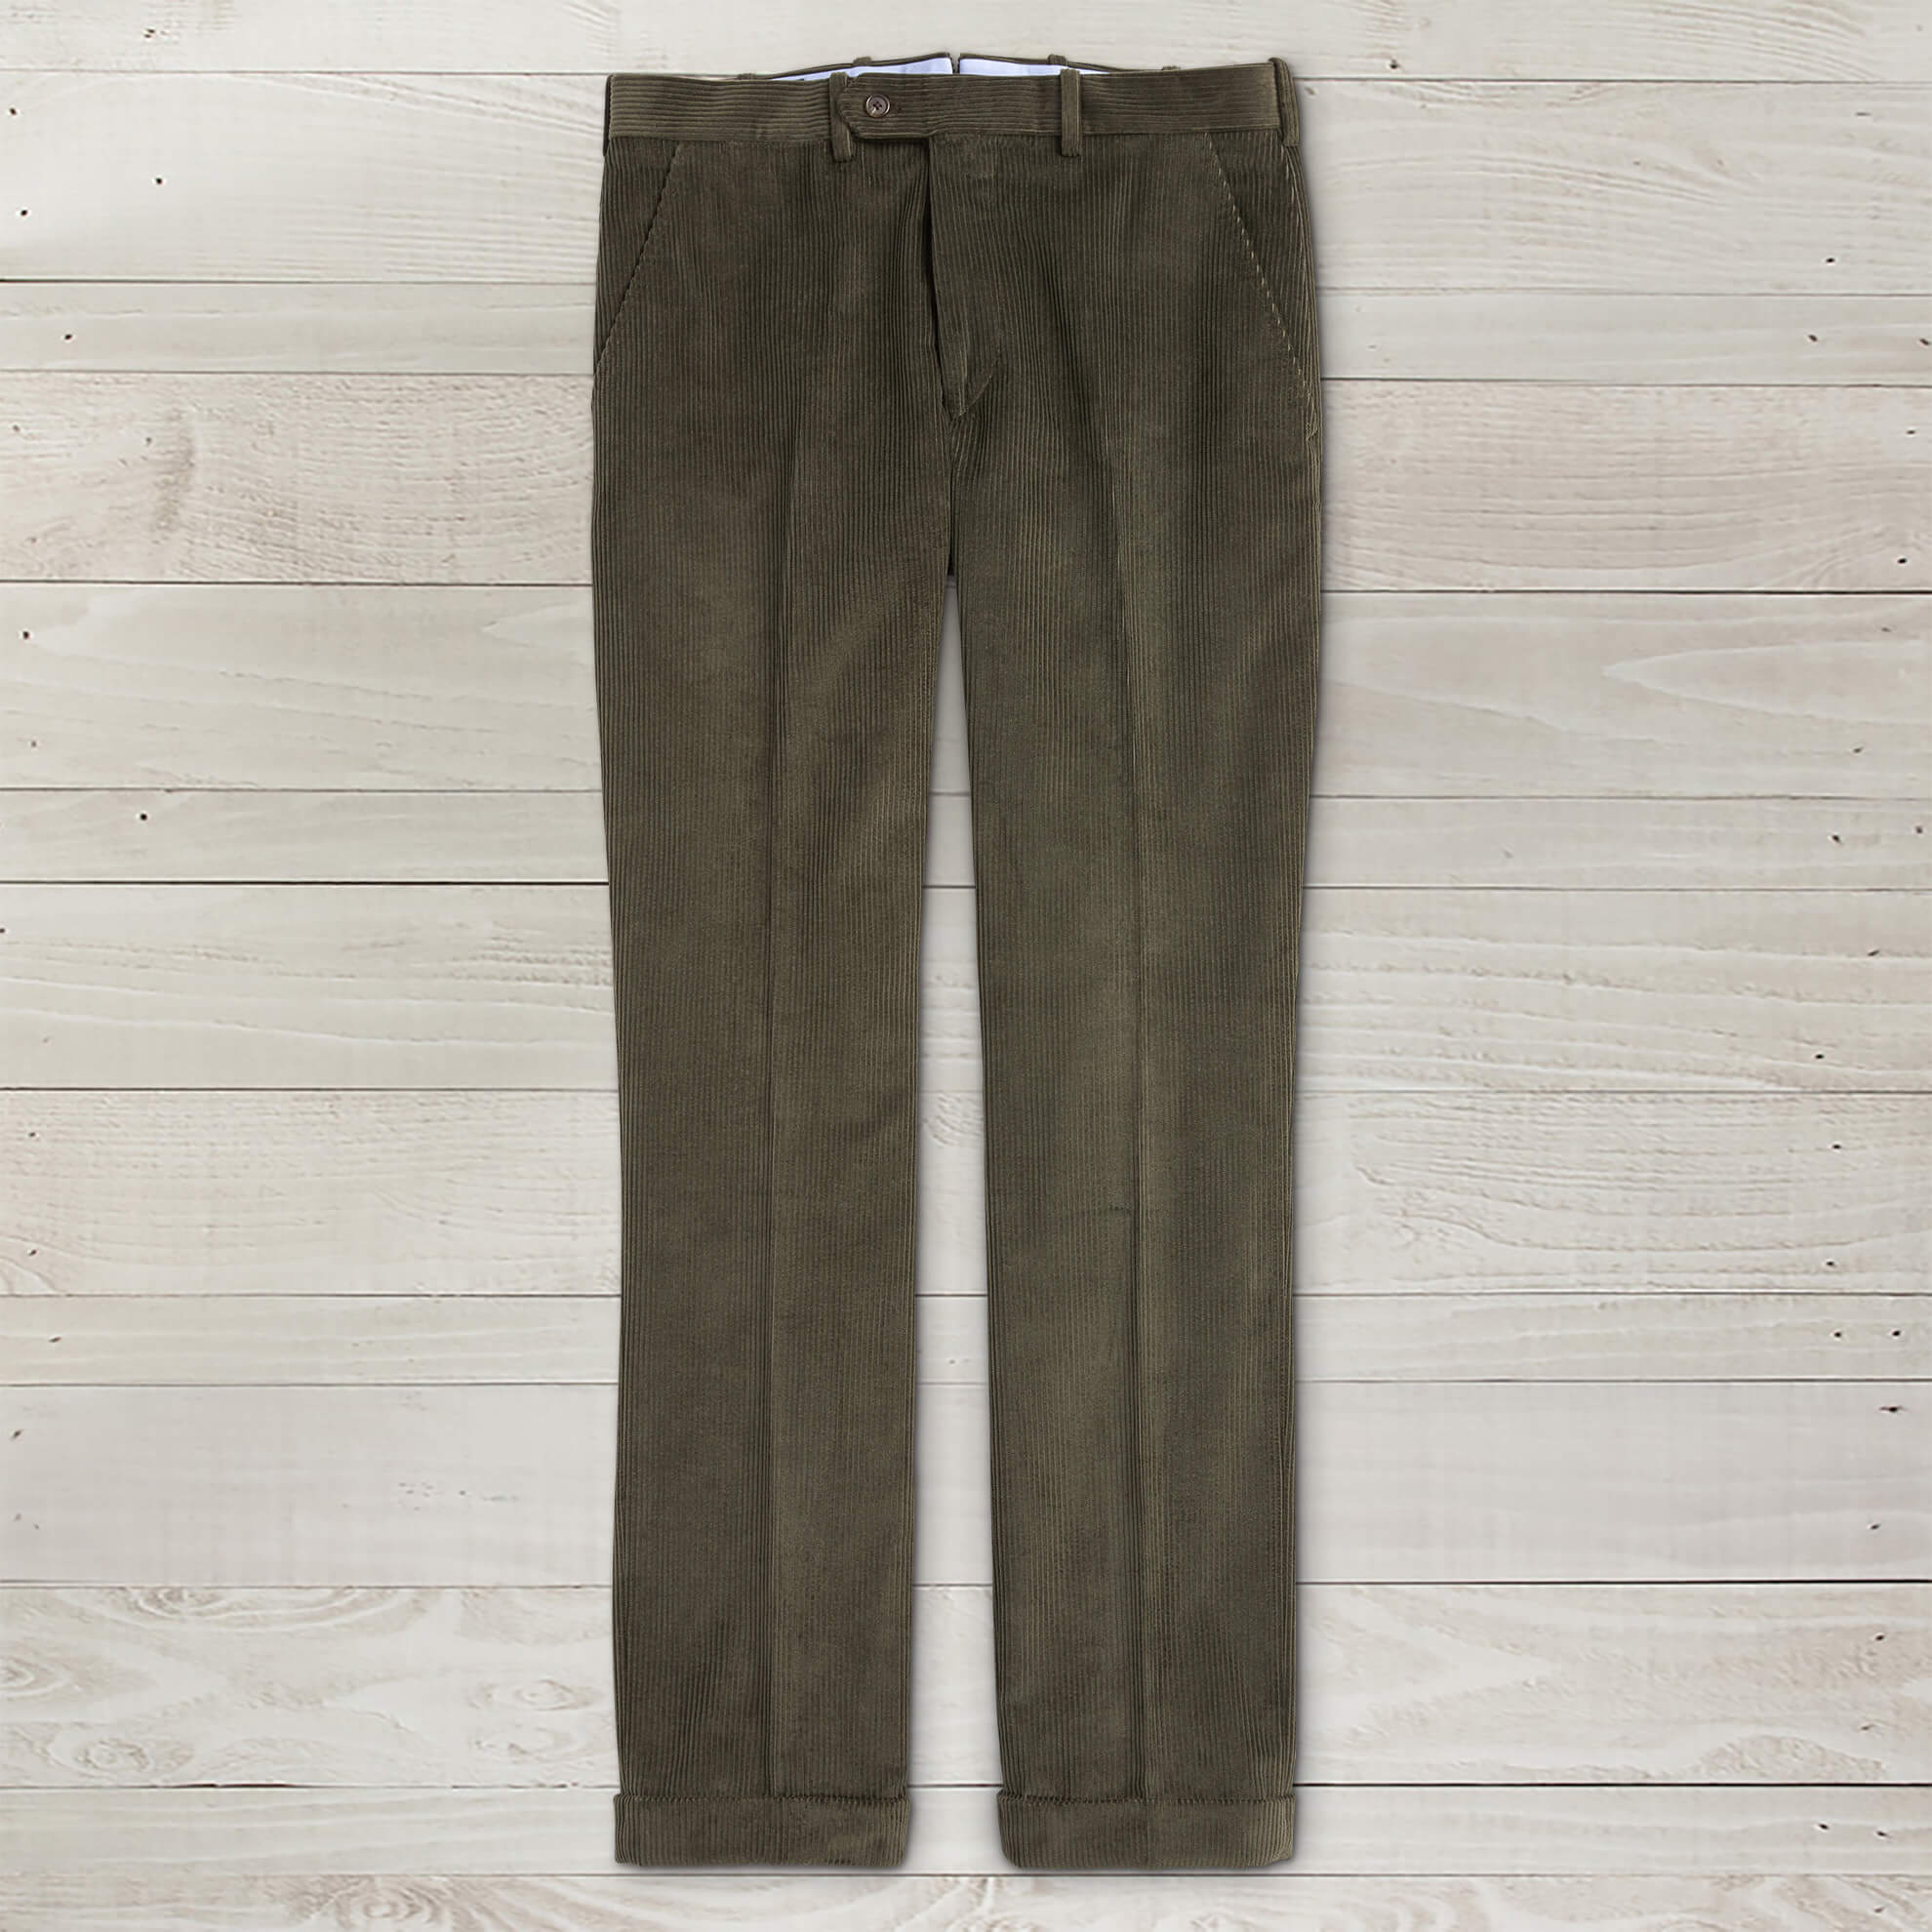 Italian Cotton Corduroy Pants